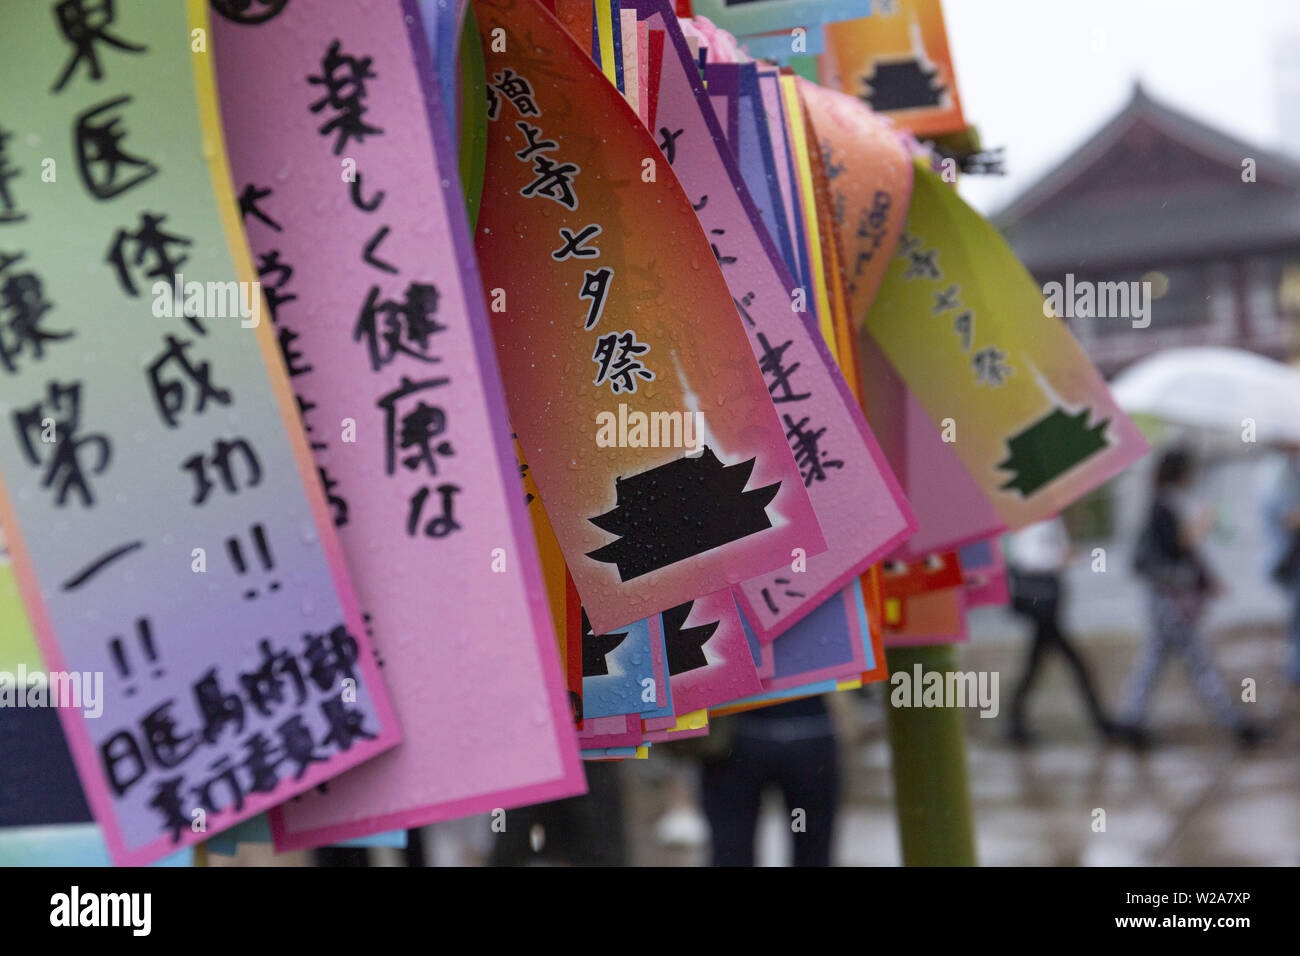 Tokyo, Japan. 7th July, 2019. Colorful papers (Tanzaku) with the wishes of visitors on display during the Tanabata festival at Zojoji Temple. Every year, people write their wishes on colorful papers (Tanzaku) to hang it on bamboo branches as a tradition of the Tanabata Festival. The annual celebration commemorates the legend of two lovers separated by the Milky Way who only meet once a year on the seventh day of the seventh month. The festival has been held since the Edo era. Credit: Rodrigo Reyes Marin/ZUMA Wire/Alamy Live News - Stock Image